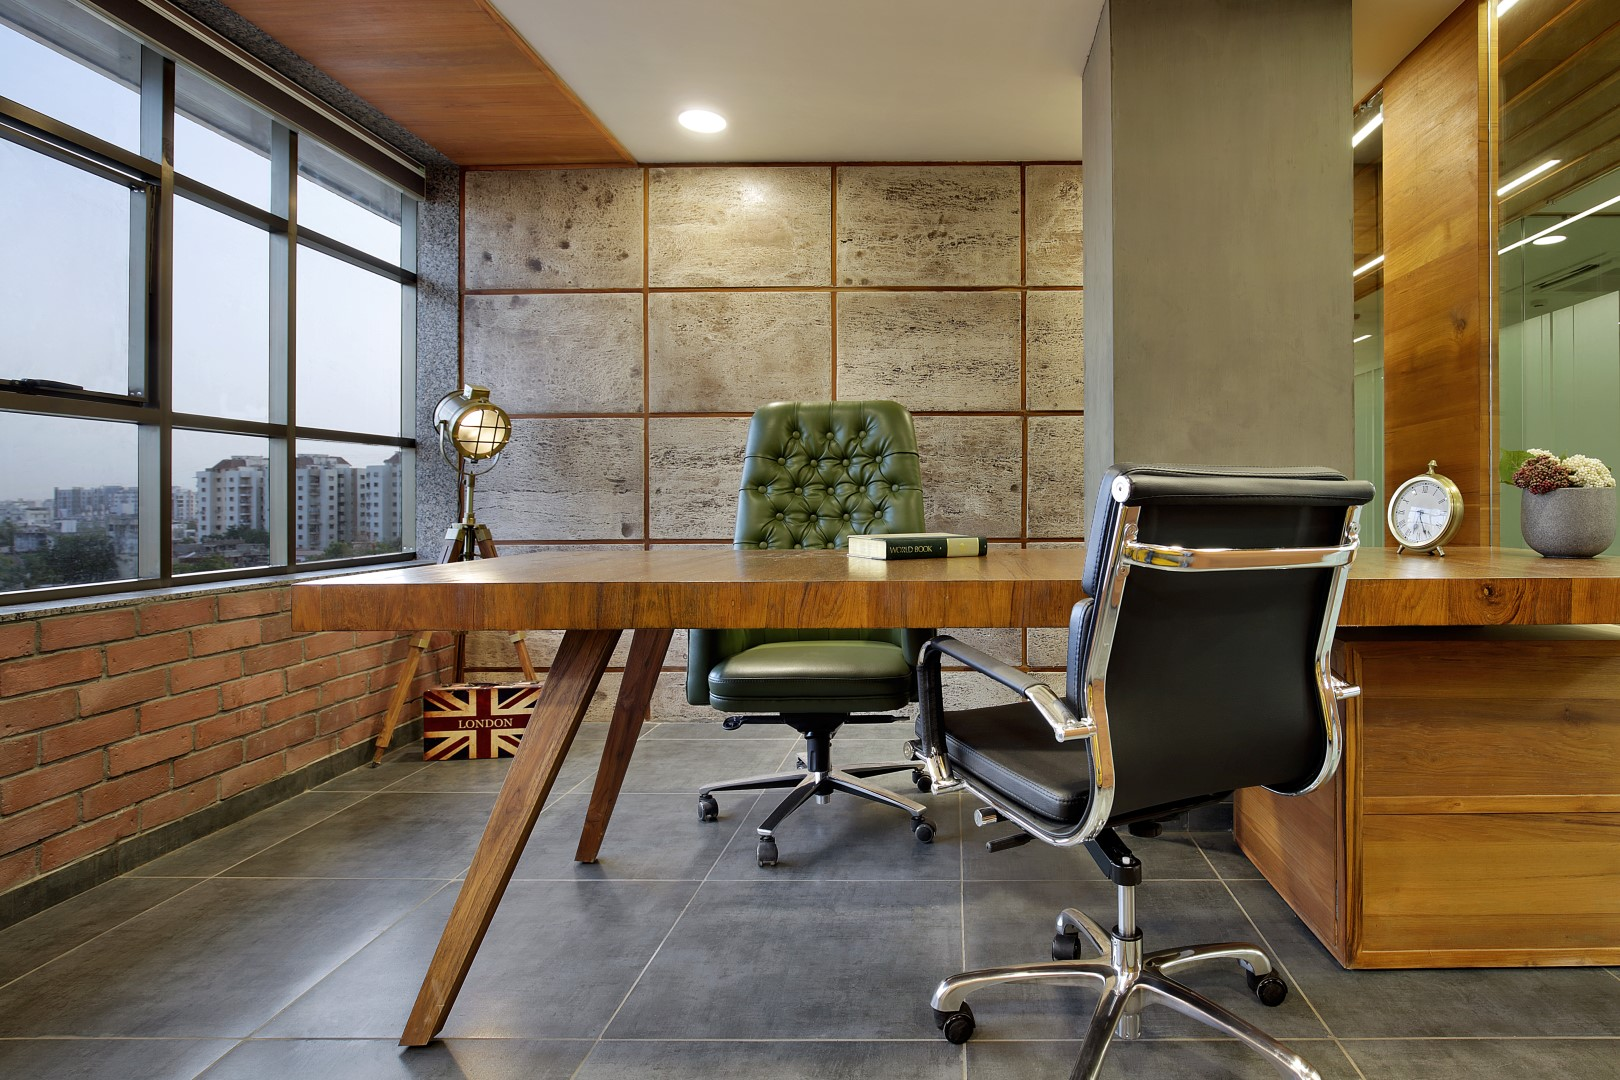 31 Office Interior Design Ideas To Get Inspired